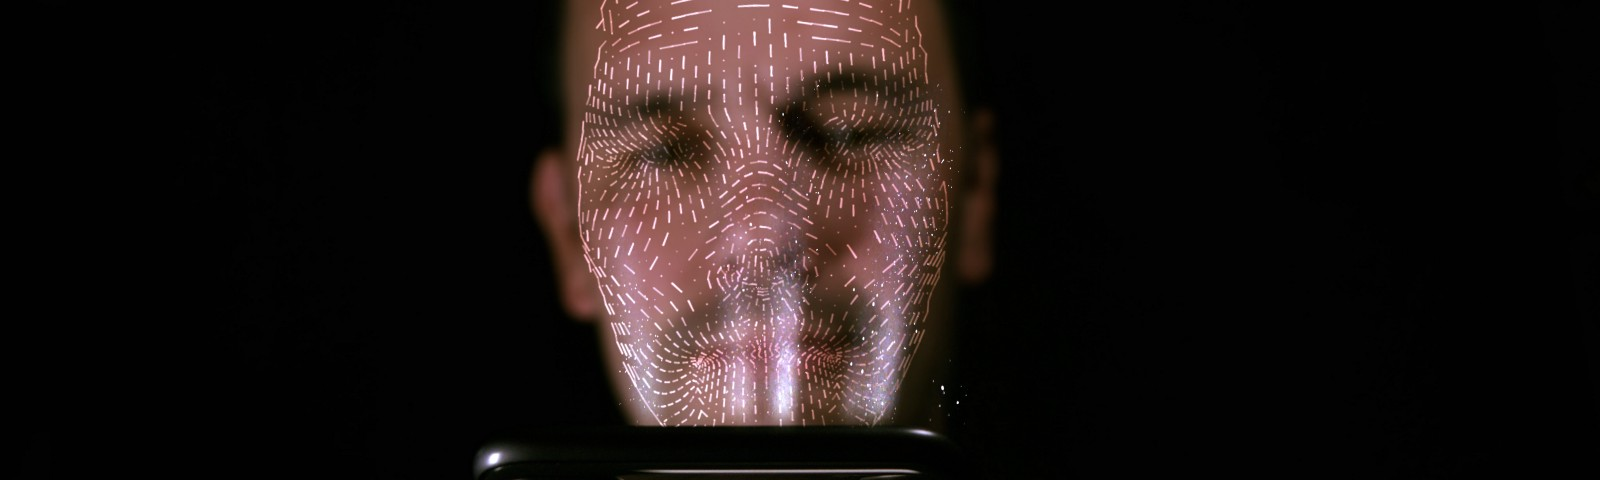 Who's Using Your Face? The Ugly Truth About Facial Recognition